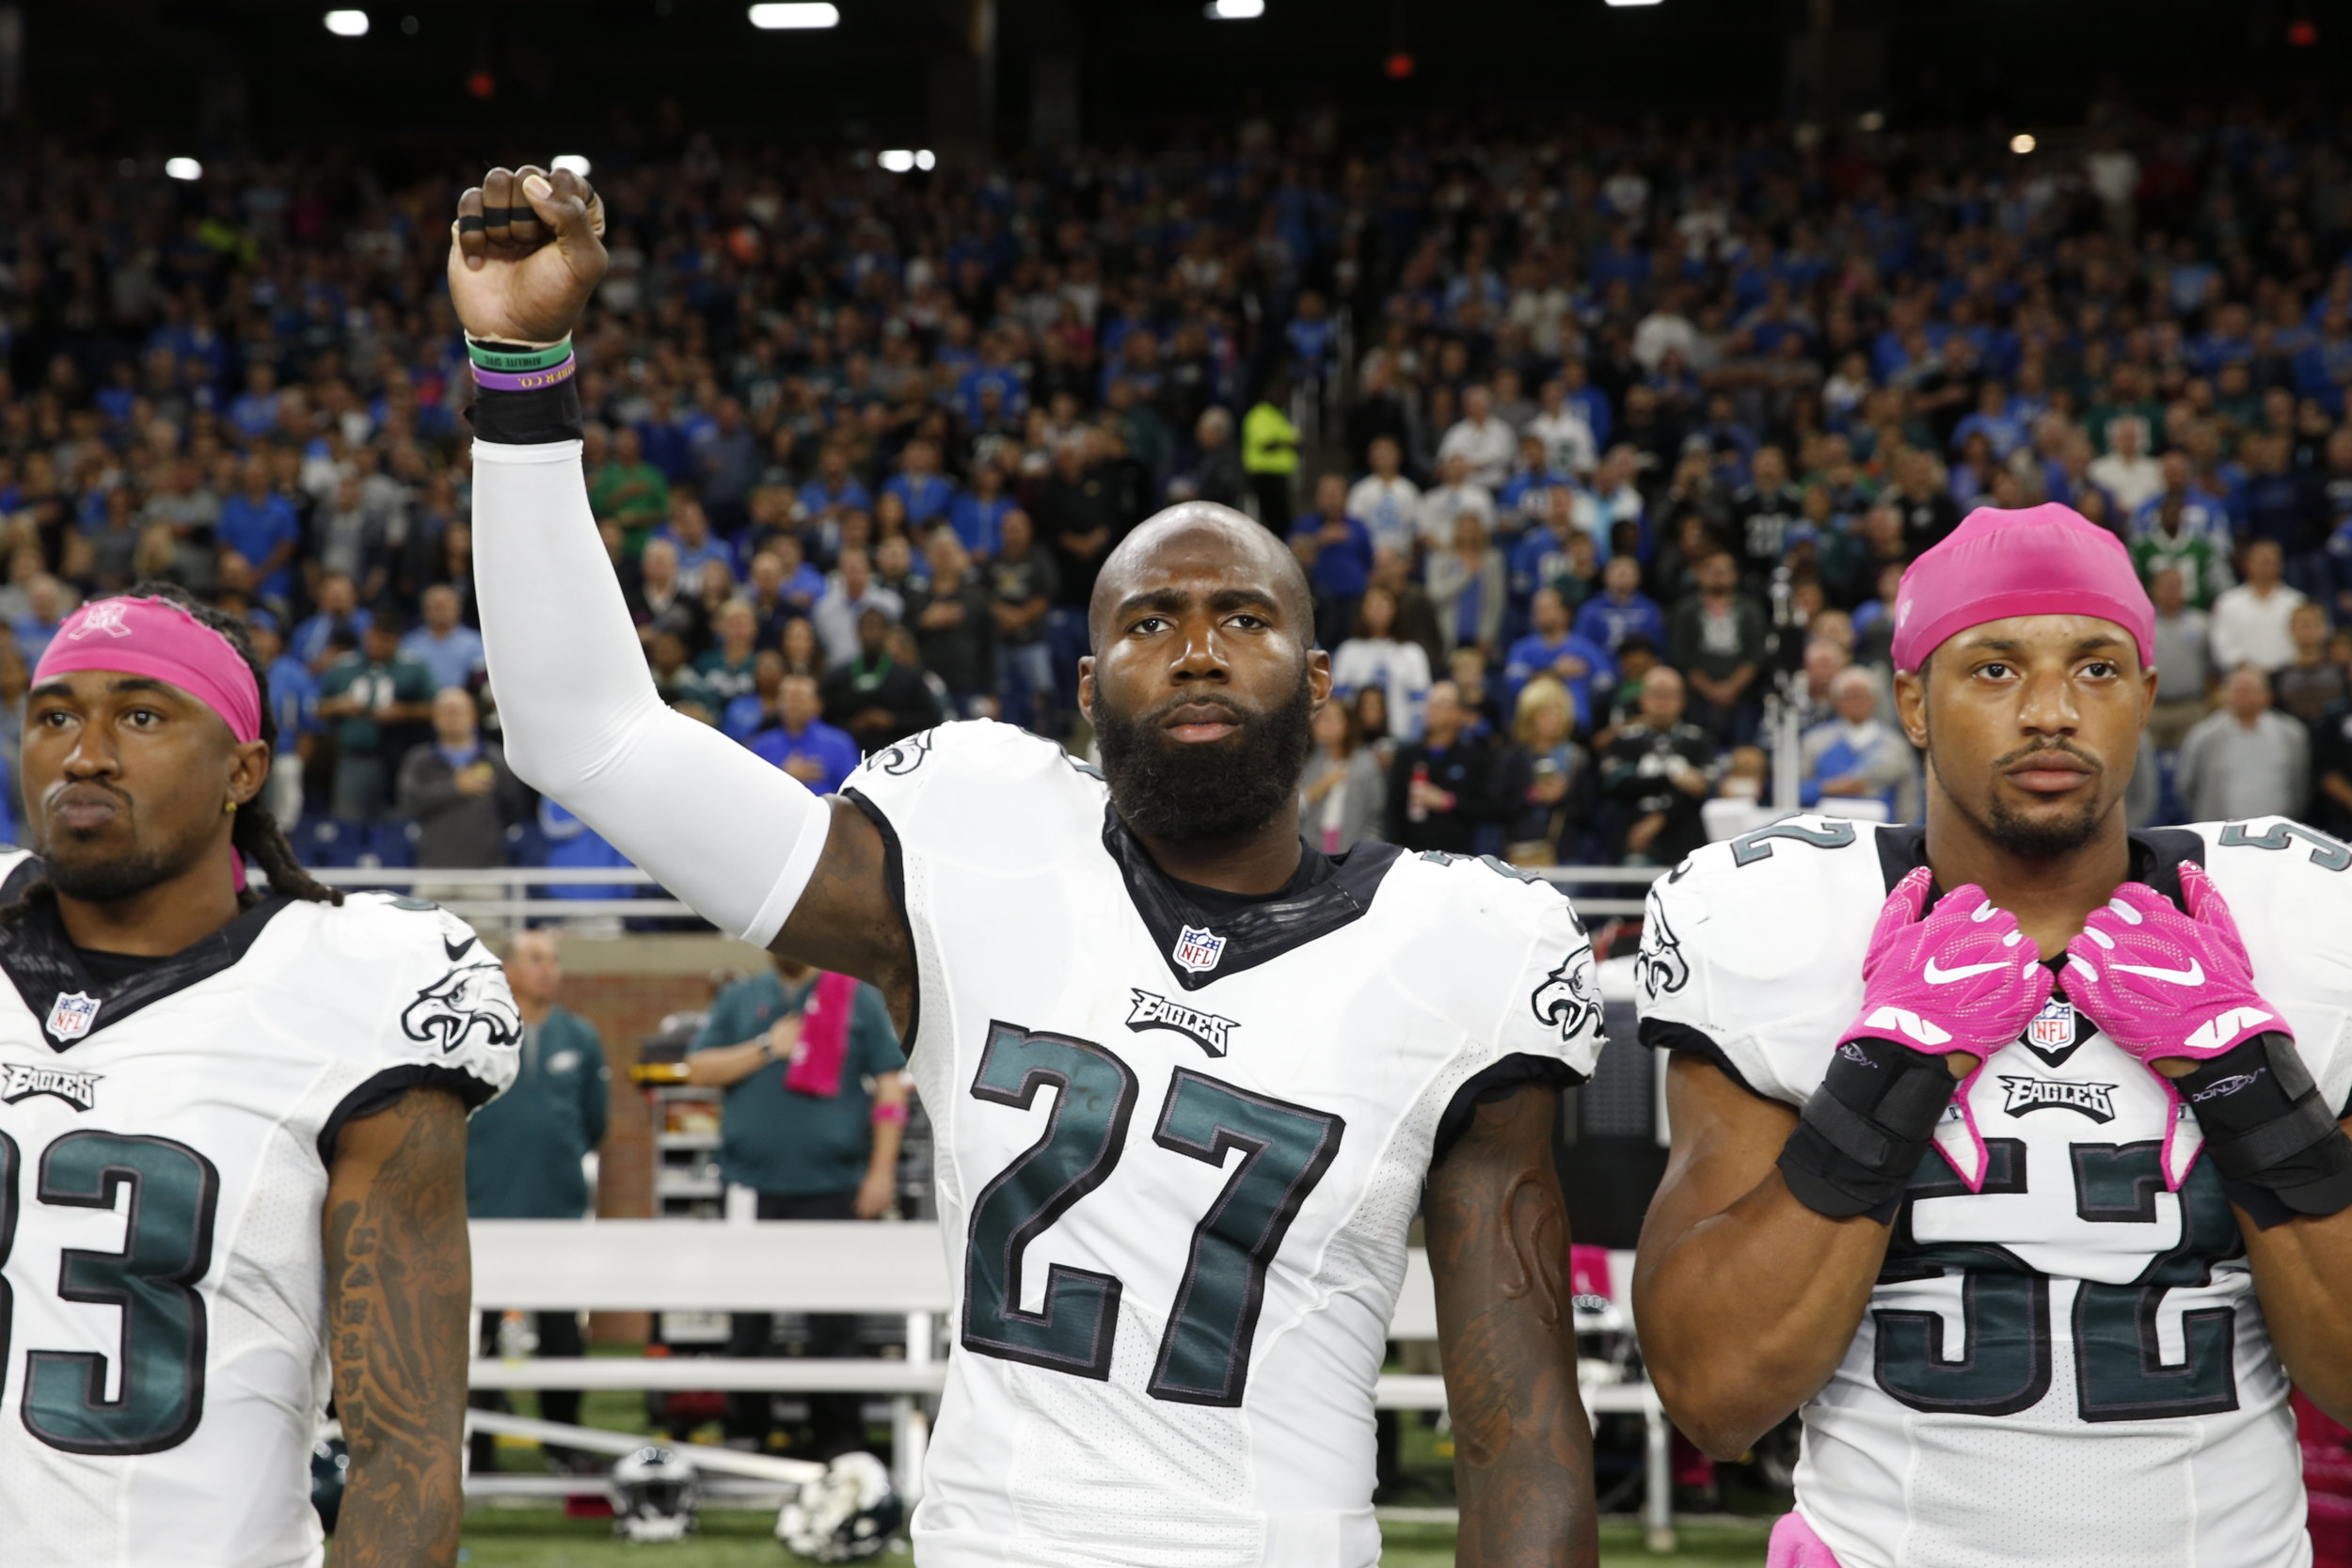 About Malcolm — Malcolm Jenkins